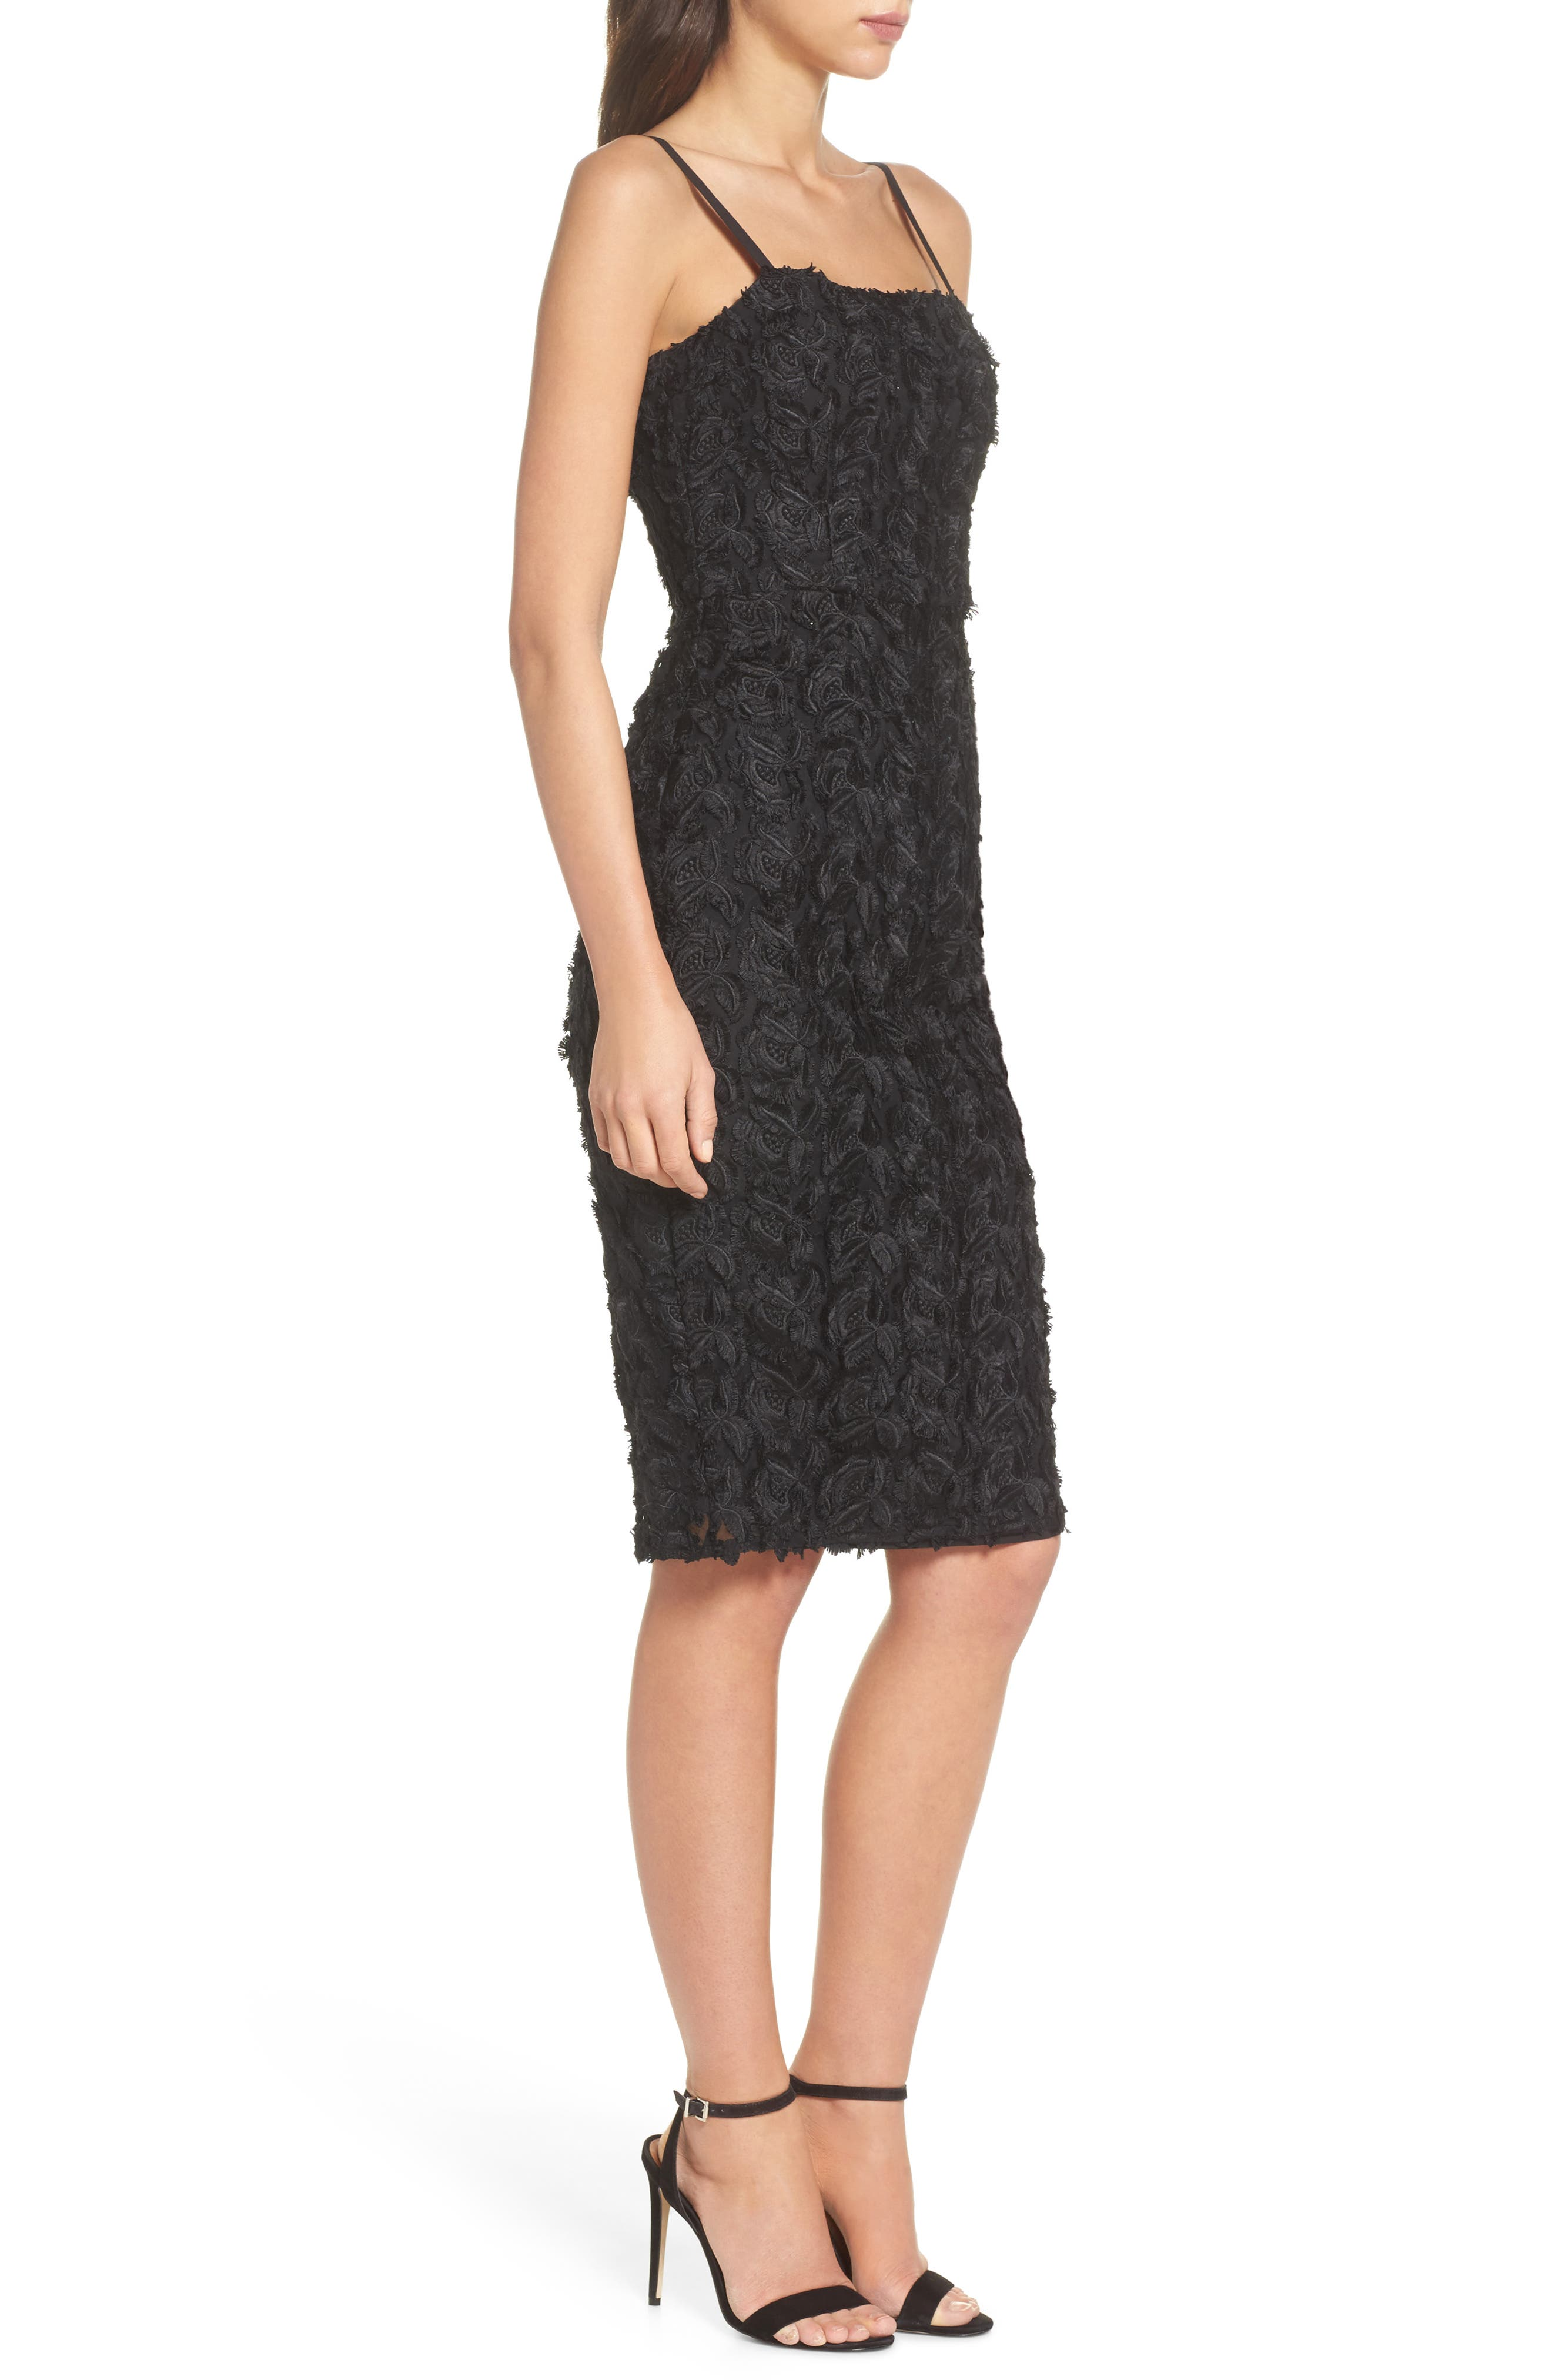 Floral Mirage Embroidered Lace Dress,                             Alternate thumbnail 3, color,                             001